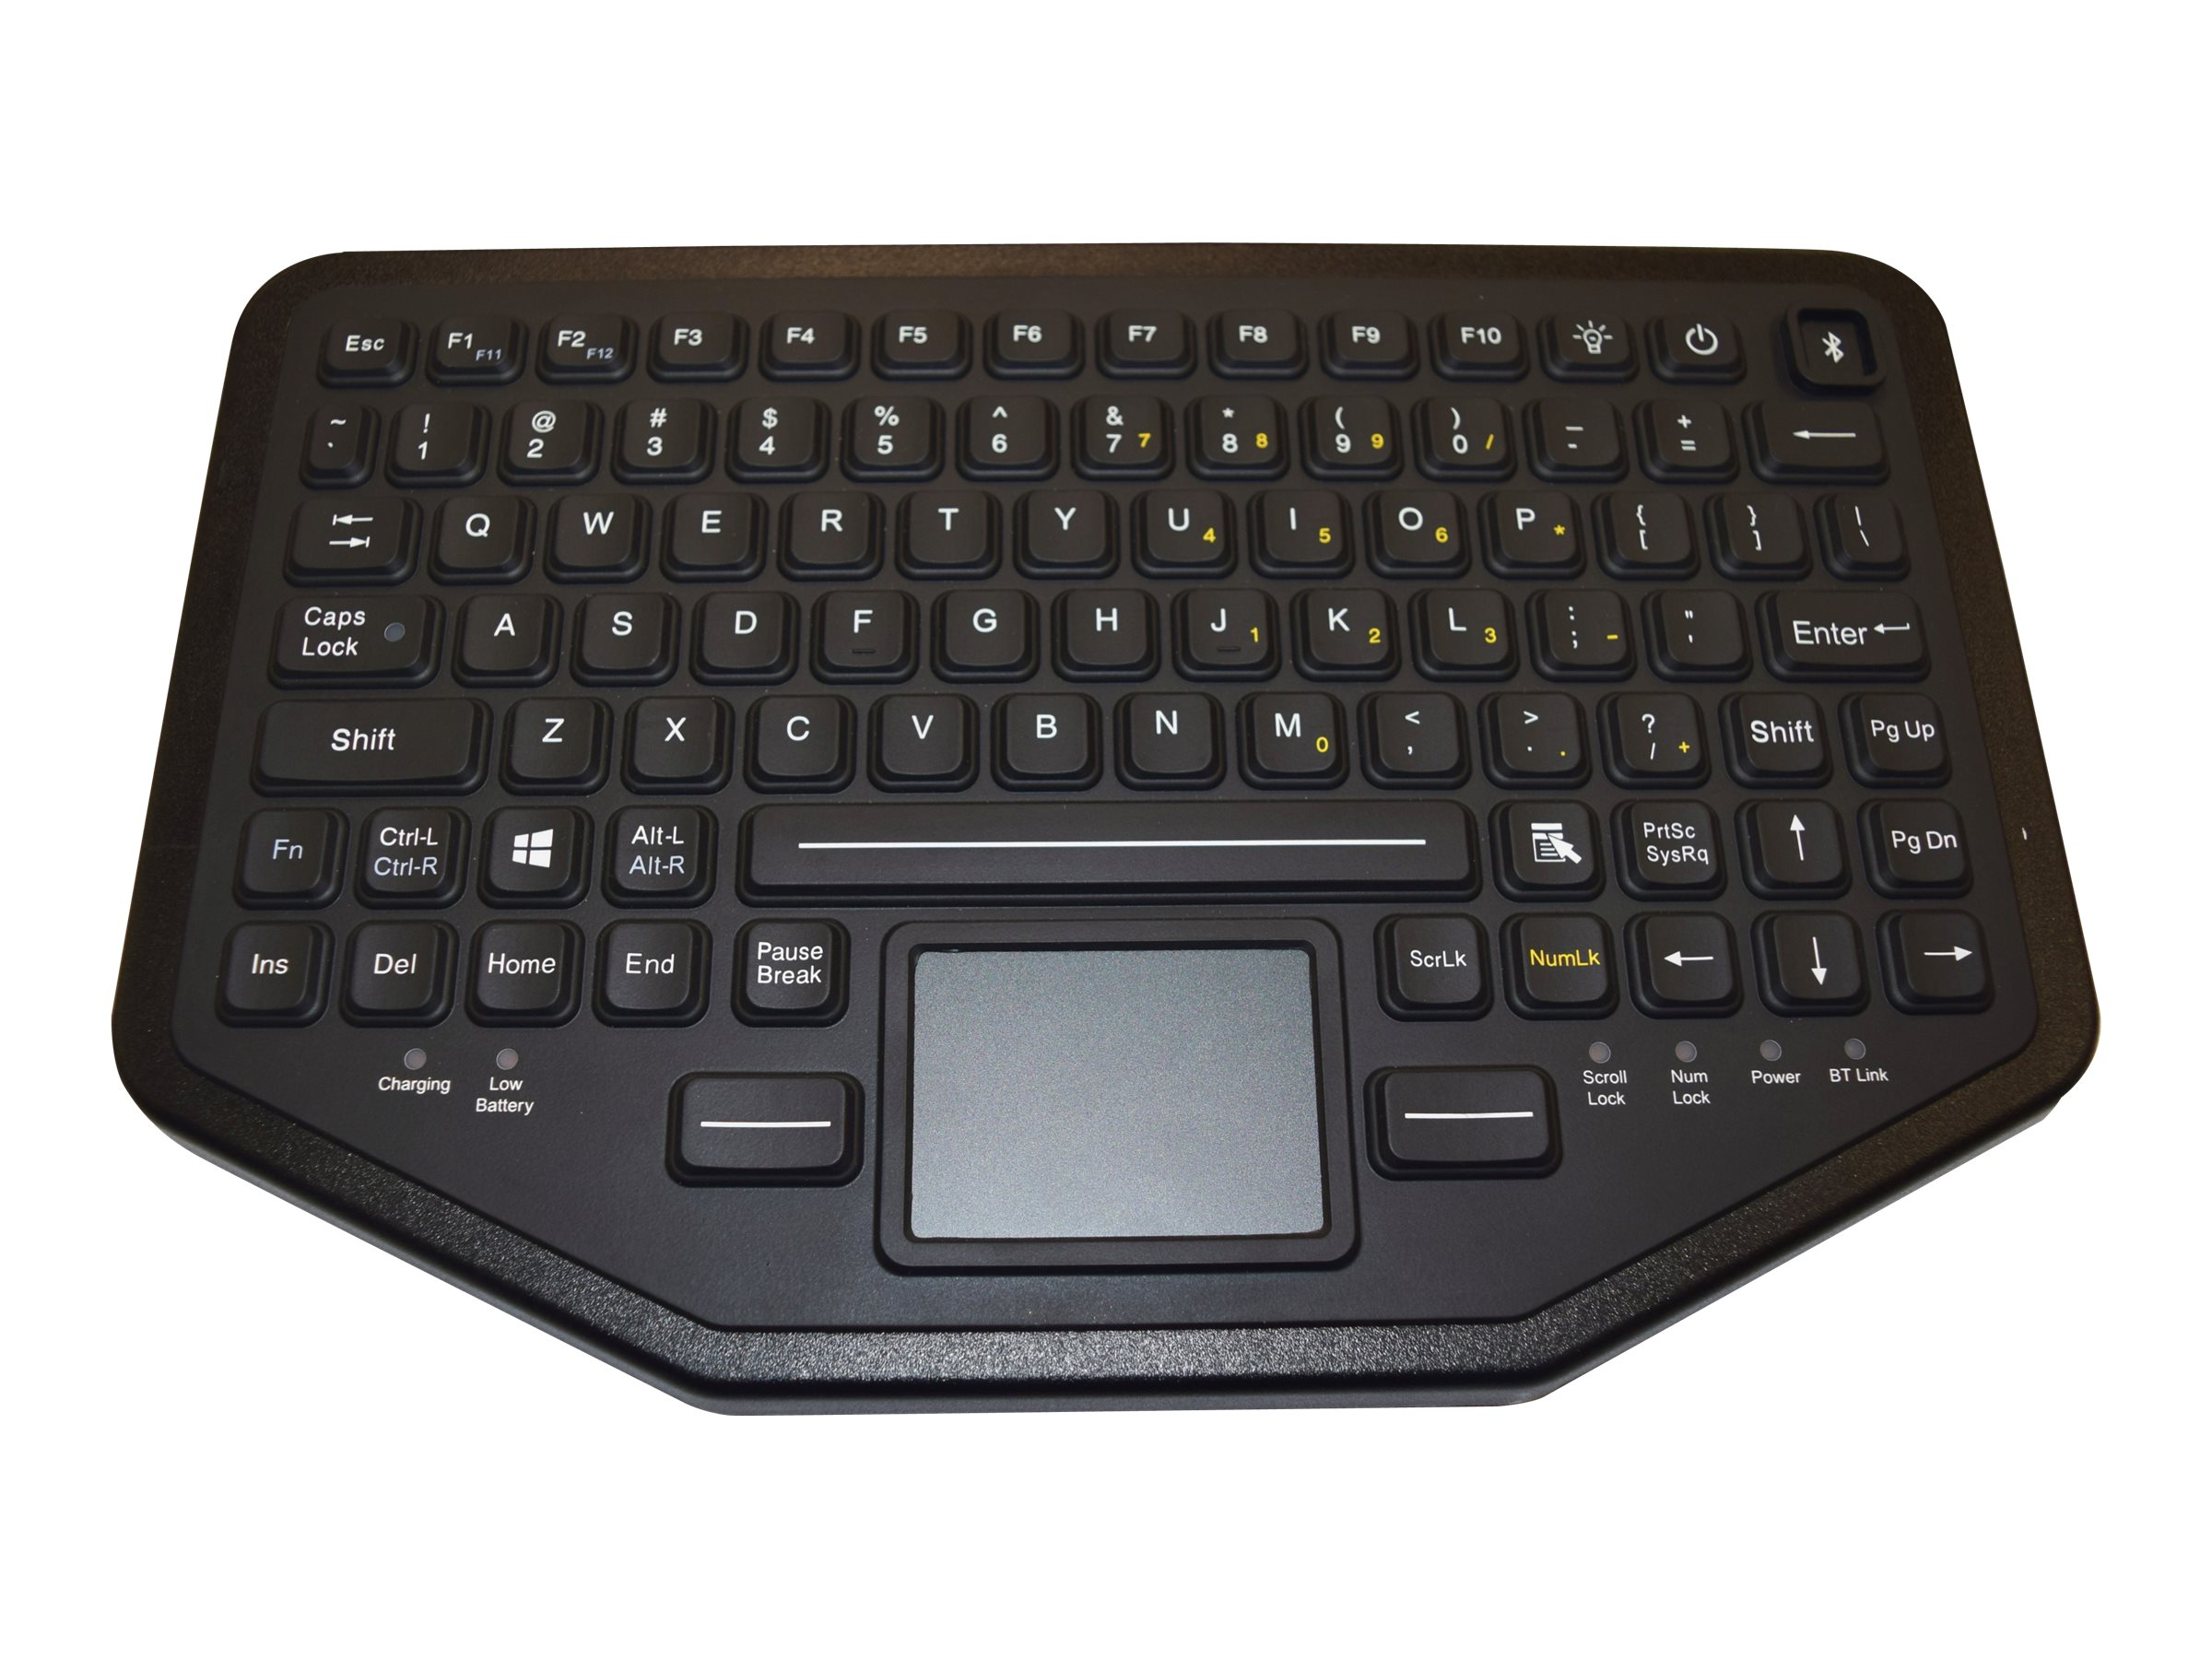 iKEY DUAL CONNECTIVITY KEYBOARD. CONNECT WITH USB OR BLUETOOTH.